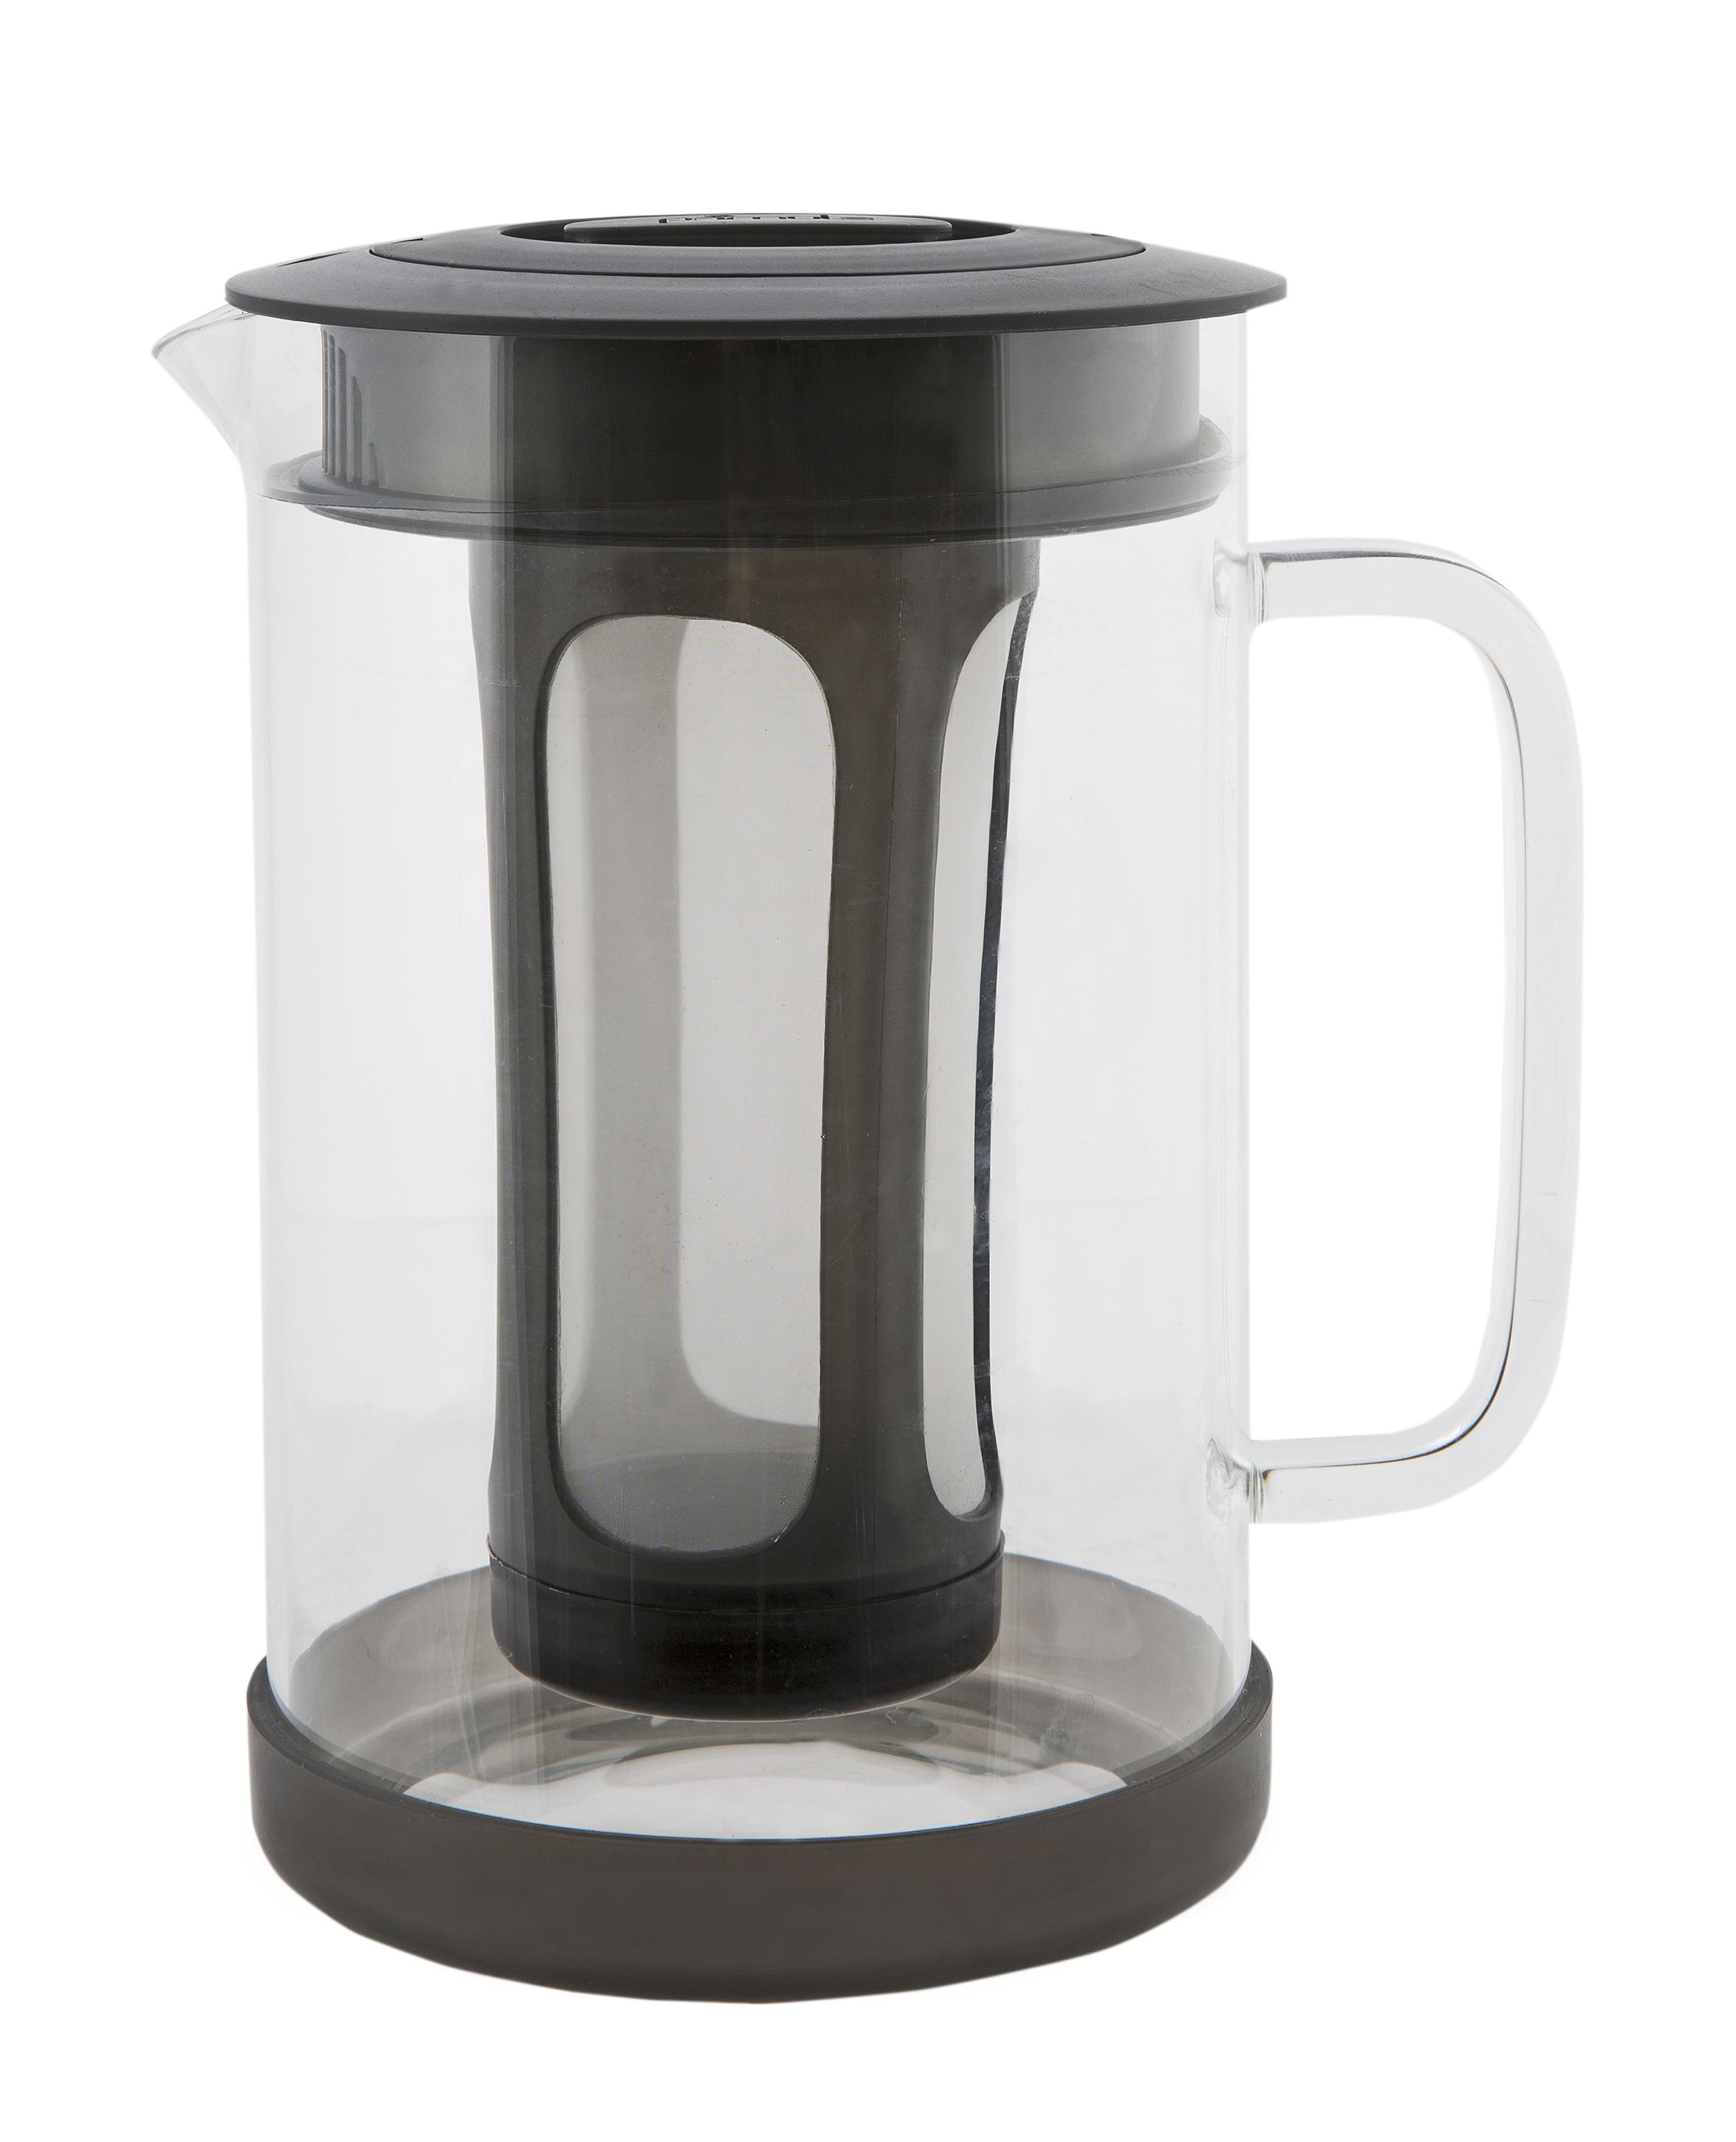 Primula Pace Cold Brew Coffee Maker - Drip Proof Lid and Filter Core - Makes 65% eBay